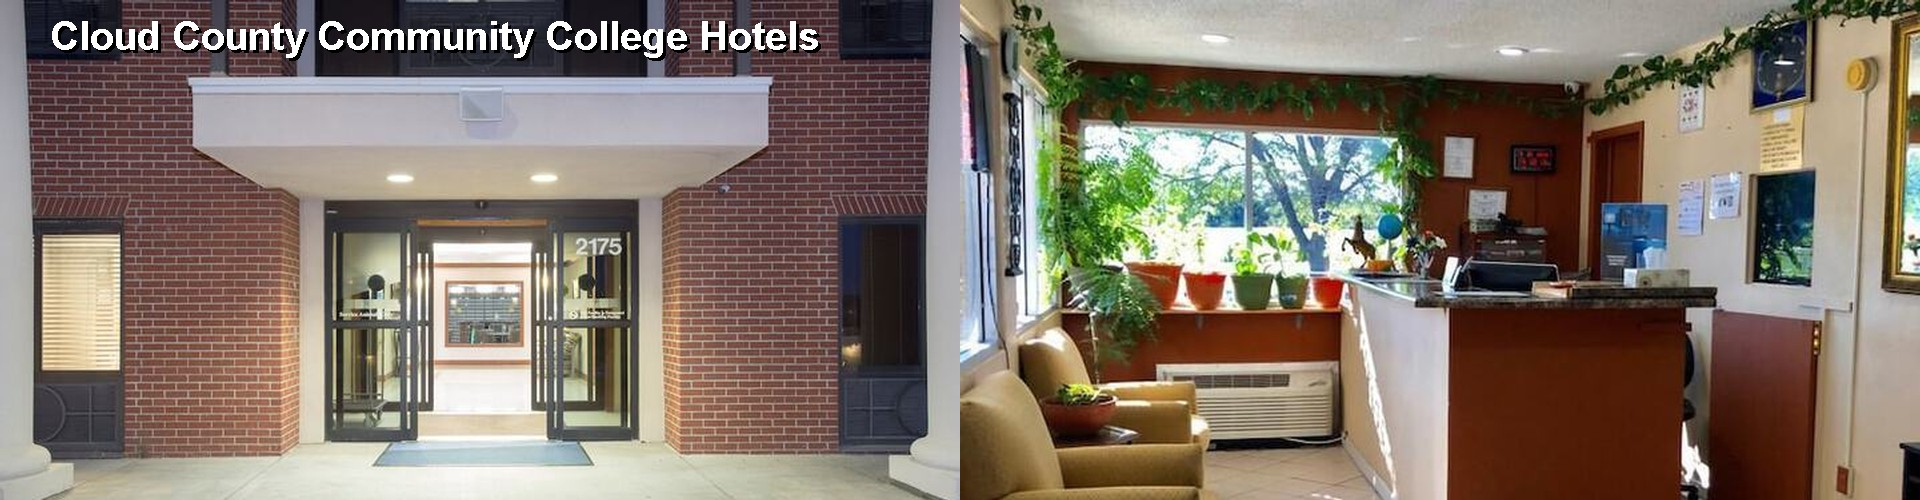 2 Best Hotels near Cloud County Community College